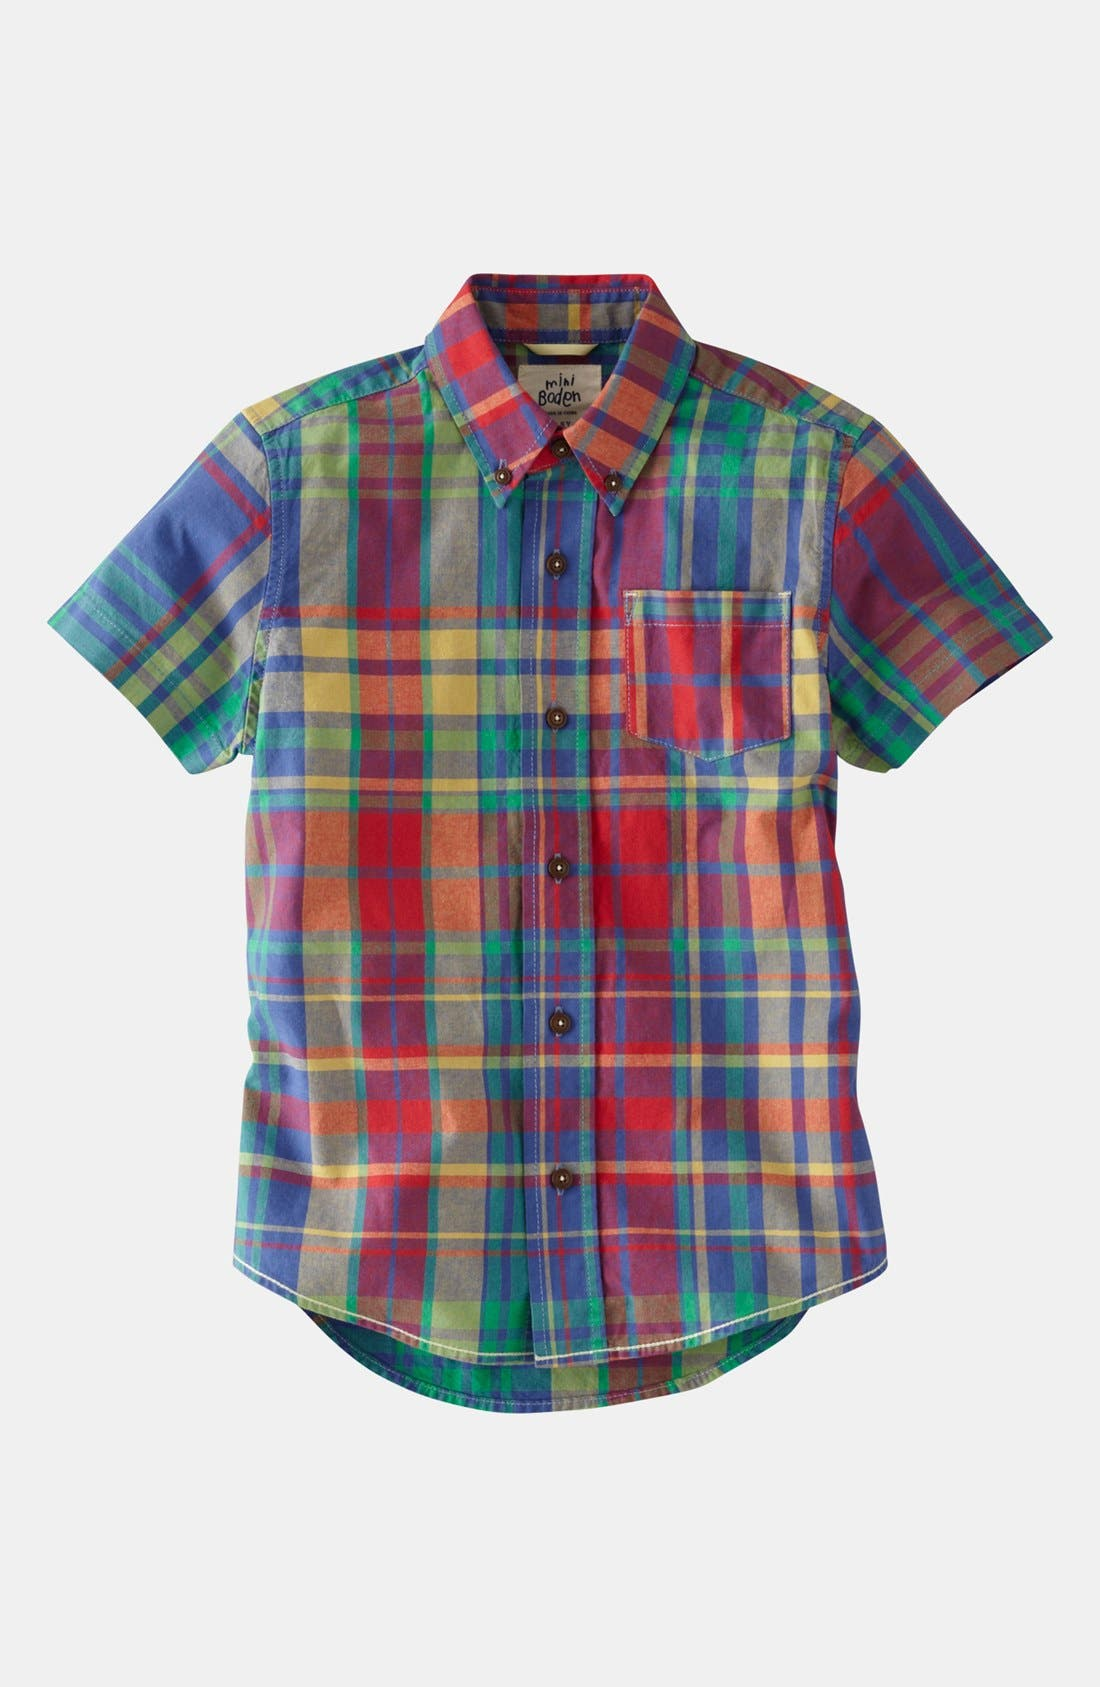 Alternate Image 1 Selected - Mini Boden 'Summer Check' Shirt (Little Boys & Big Boys)